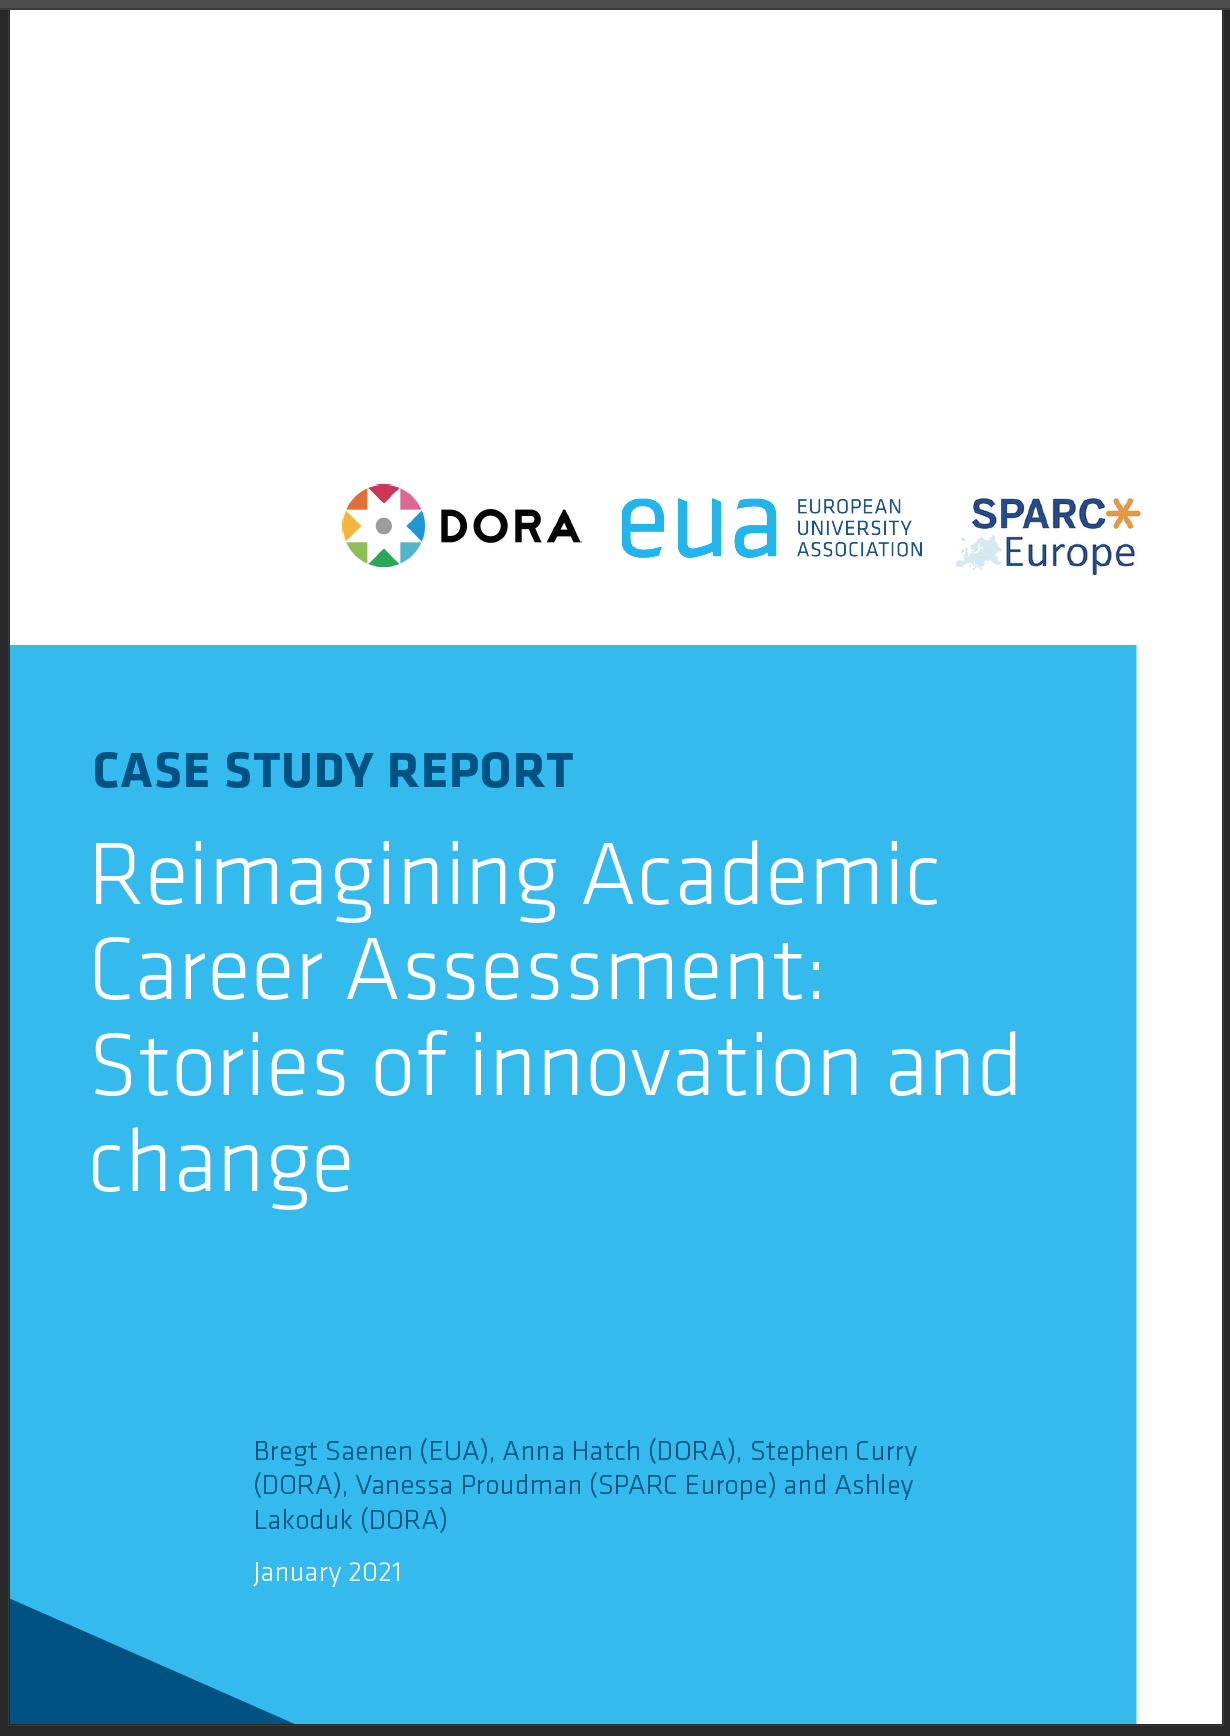 Stories of innovation and change in academic career assessment